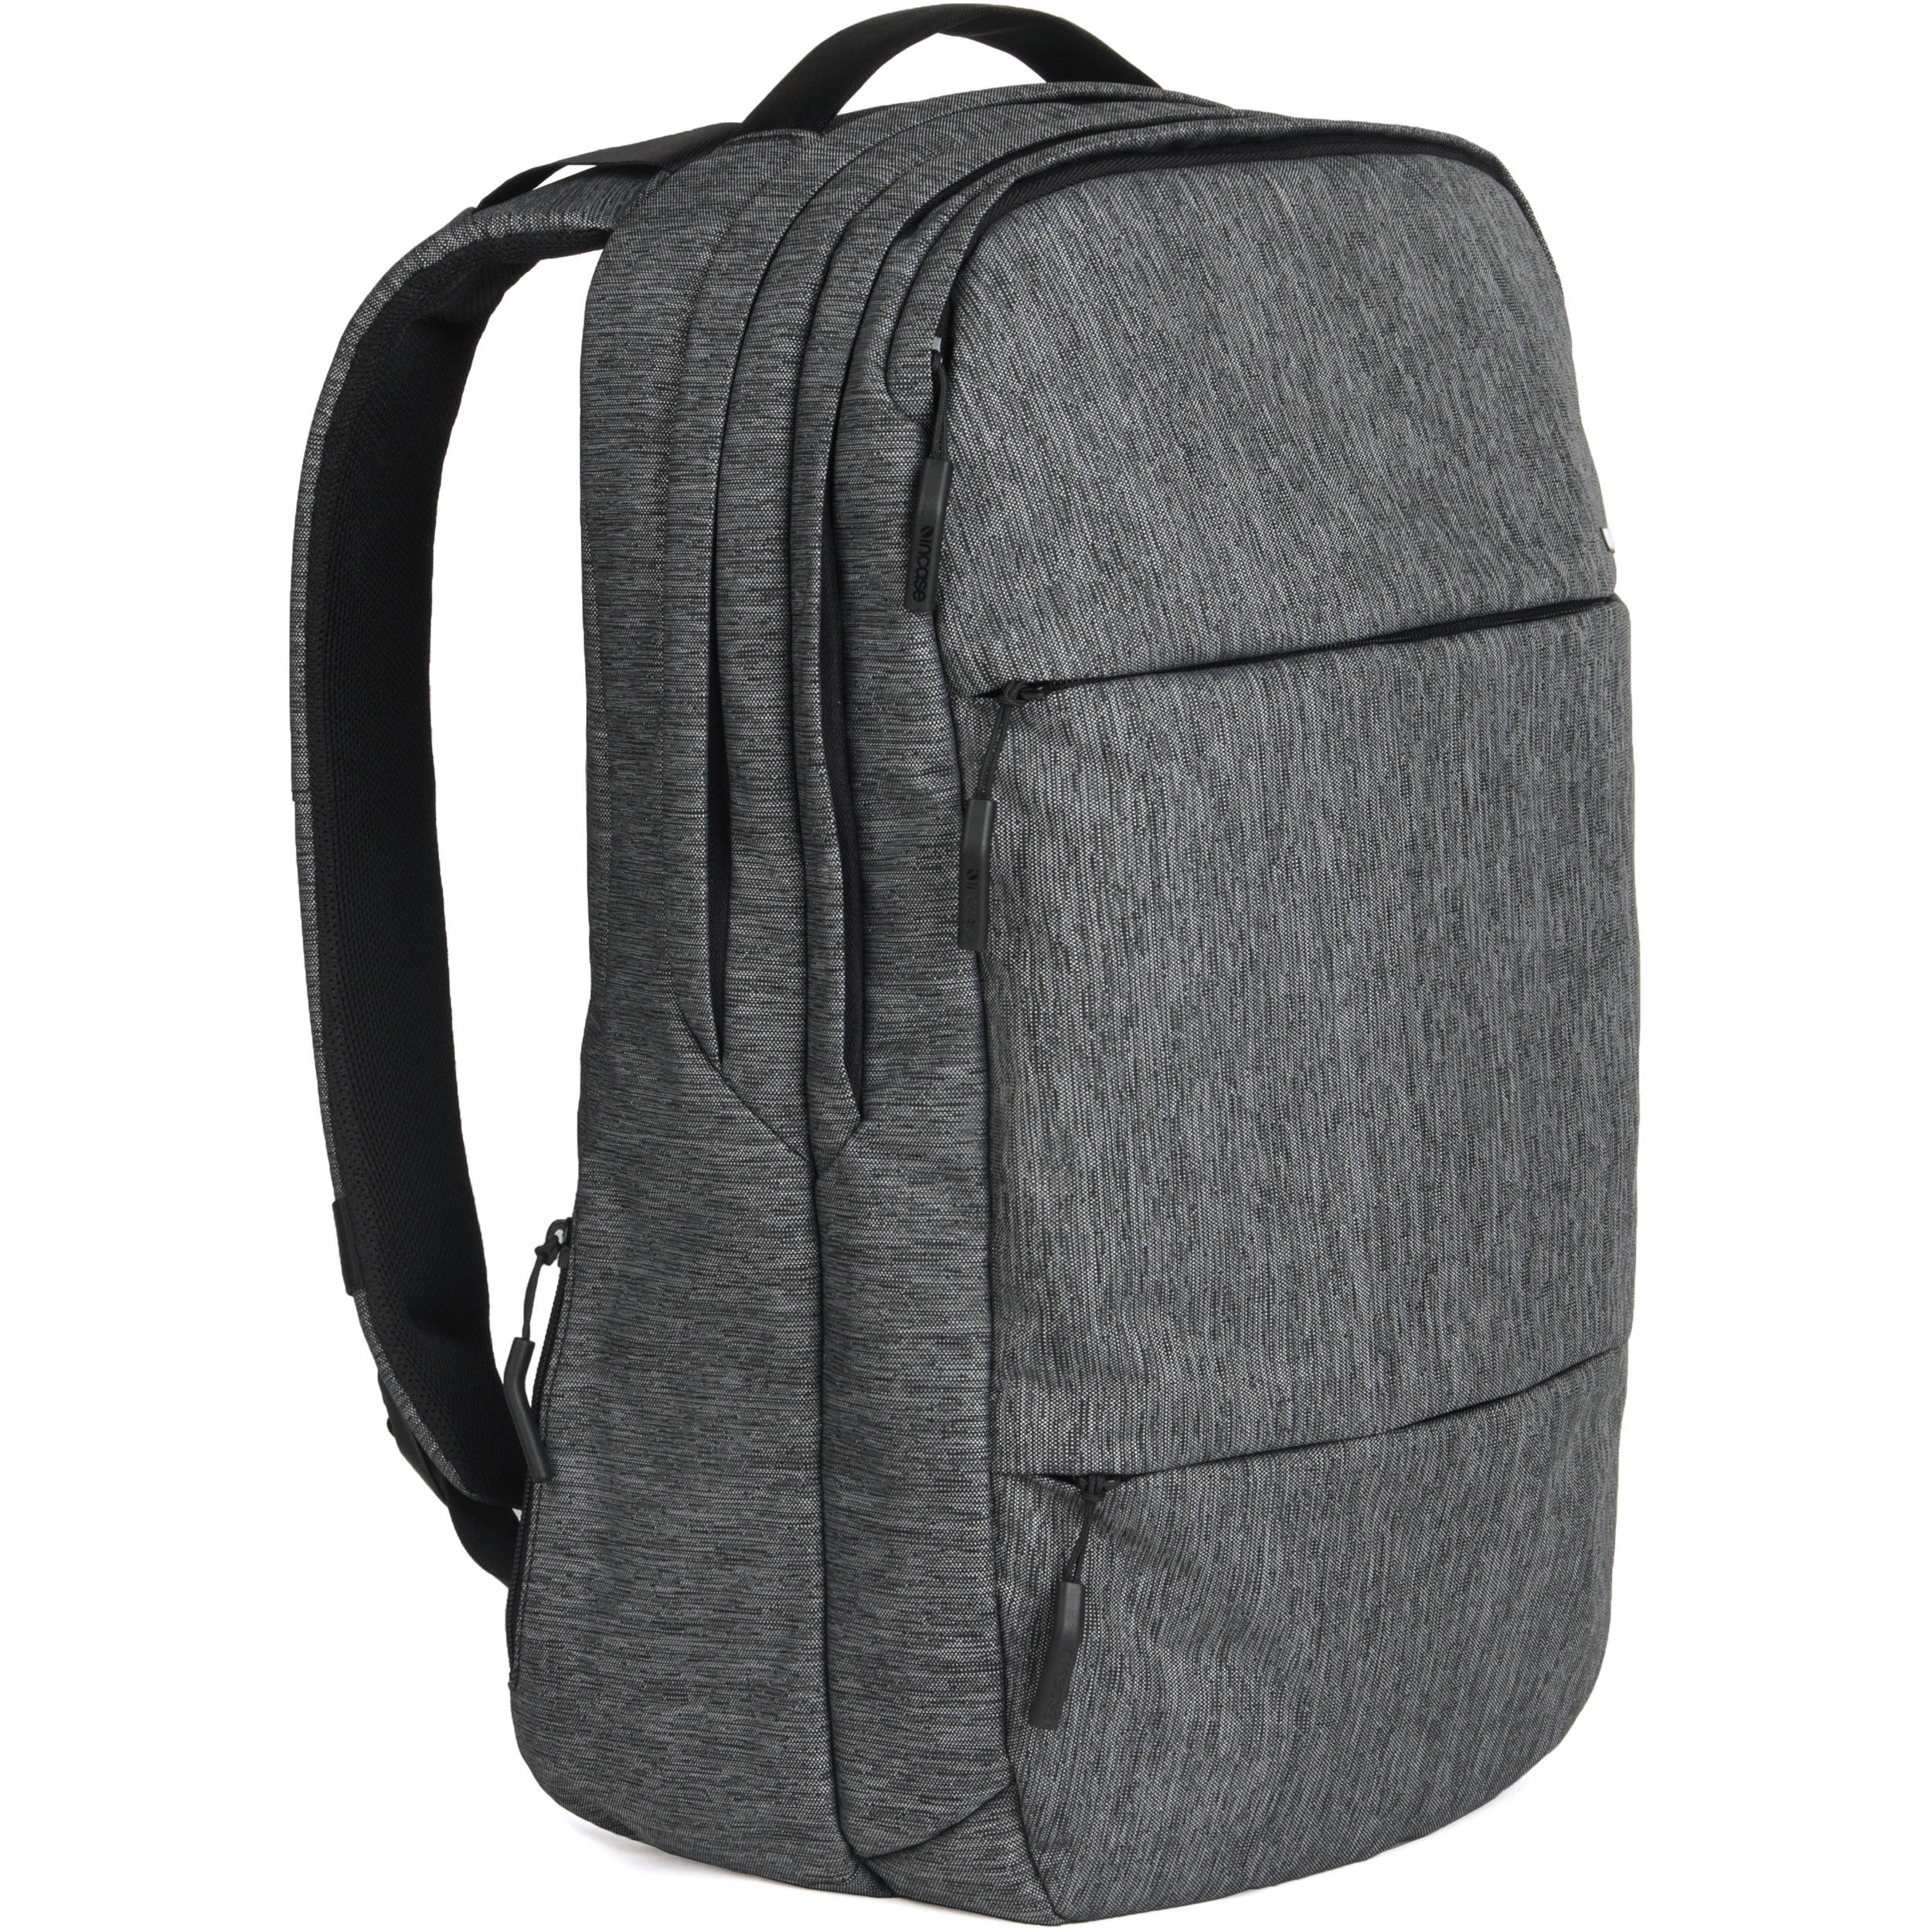 reputable site 7b9b1 1efae Incase Designs Corp City Backpack for 17